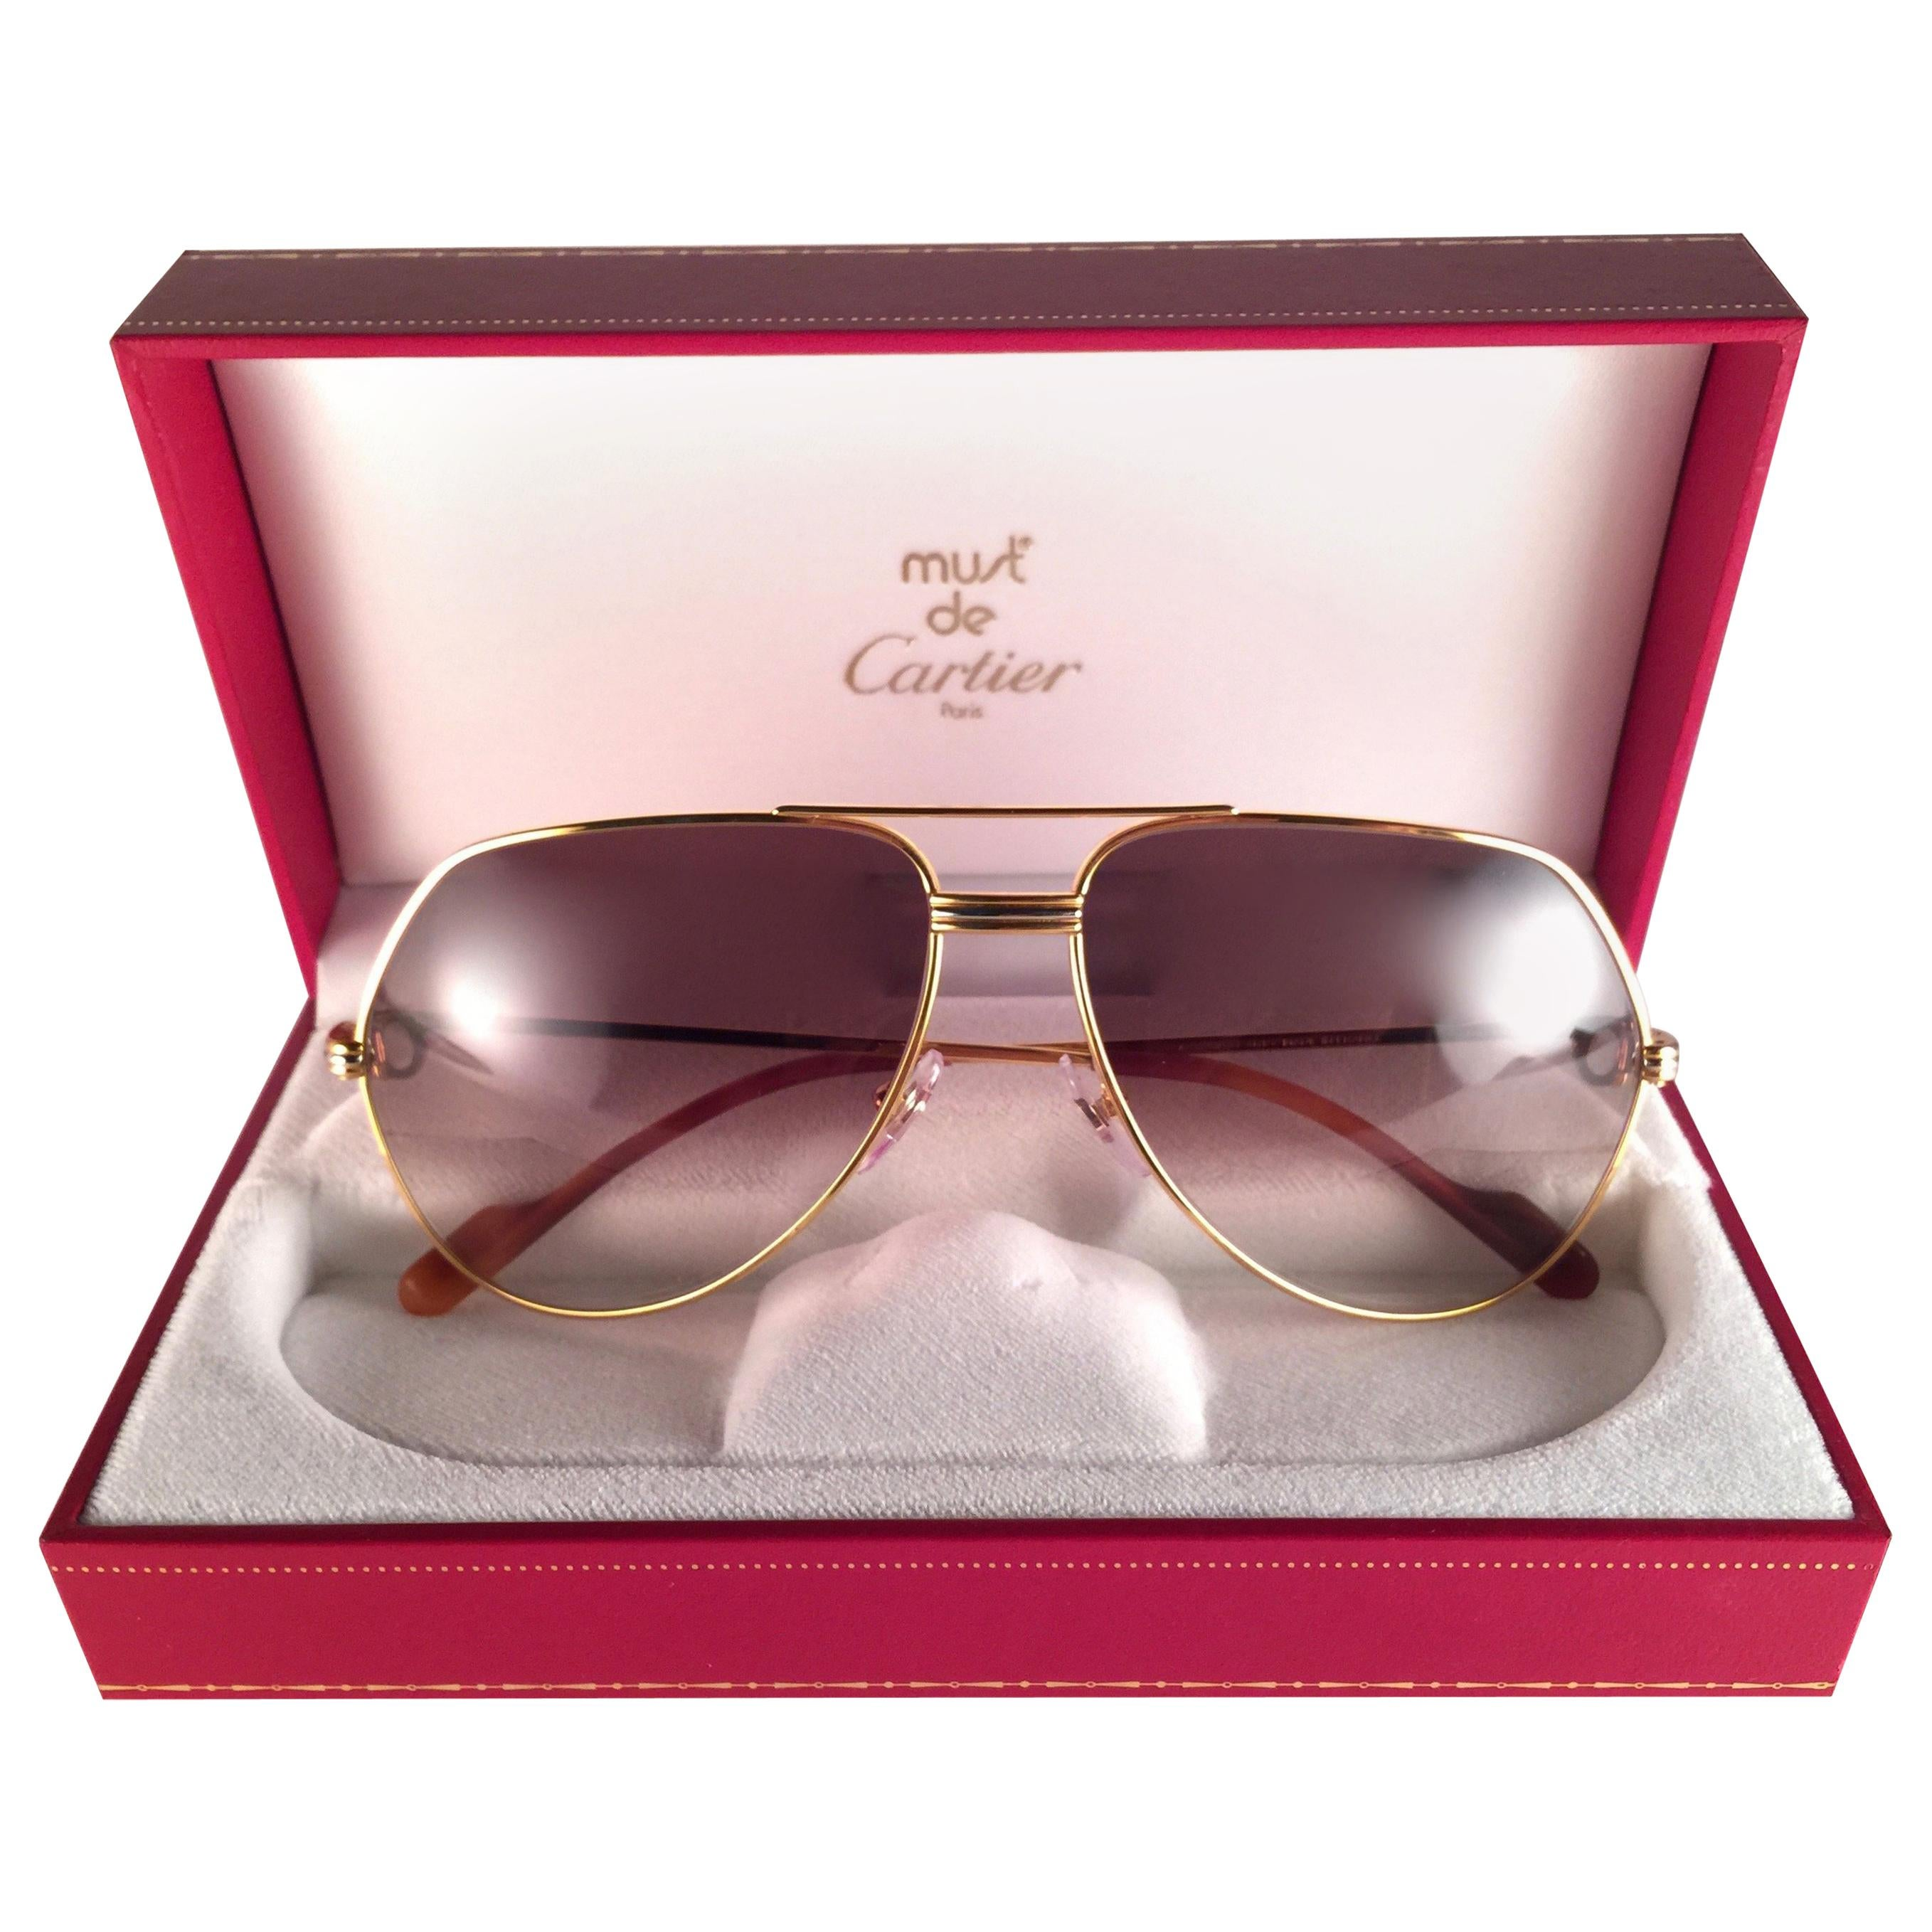 8ca61e064cd Aviator Sunglasses - 111 For Sale on 1stdibs